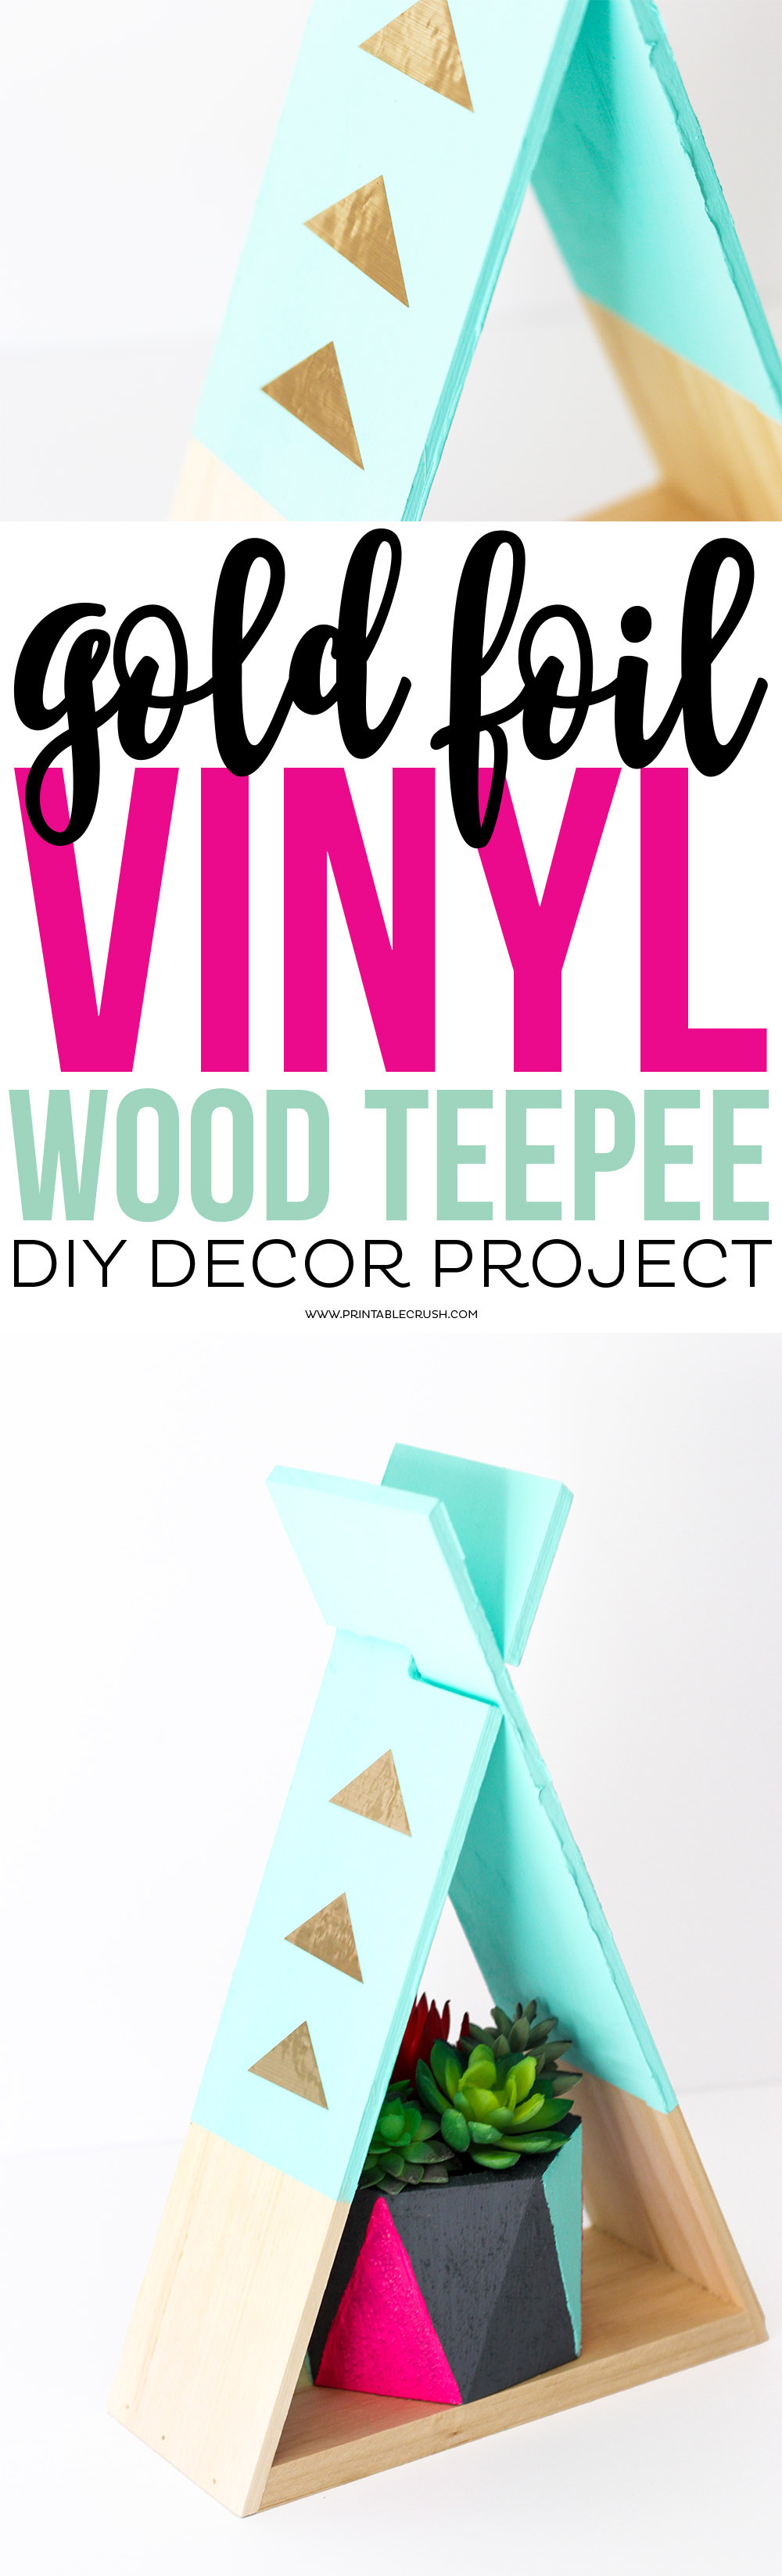 This Gold Foil Vinyl Wood Teepee is such an easy DIY Project and it is the perfect piece for modern home decor. Customize it with colors to match your home for a personal touch!